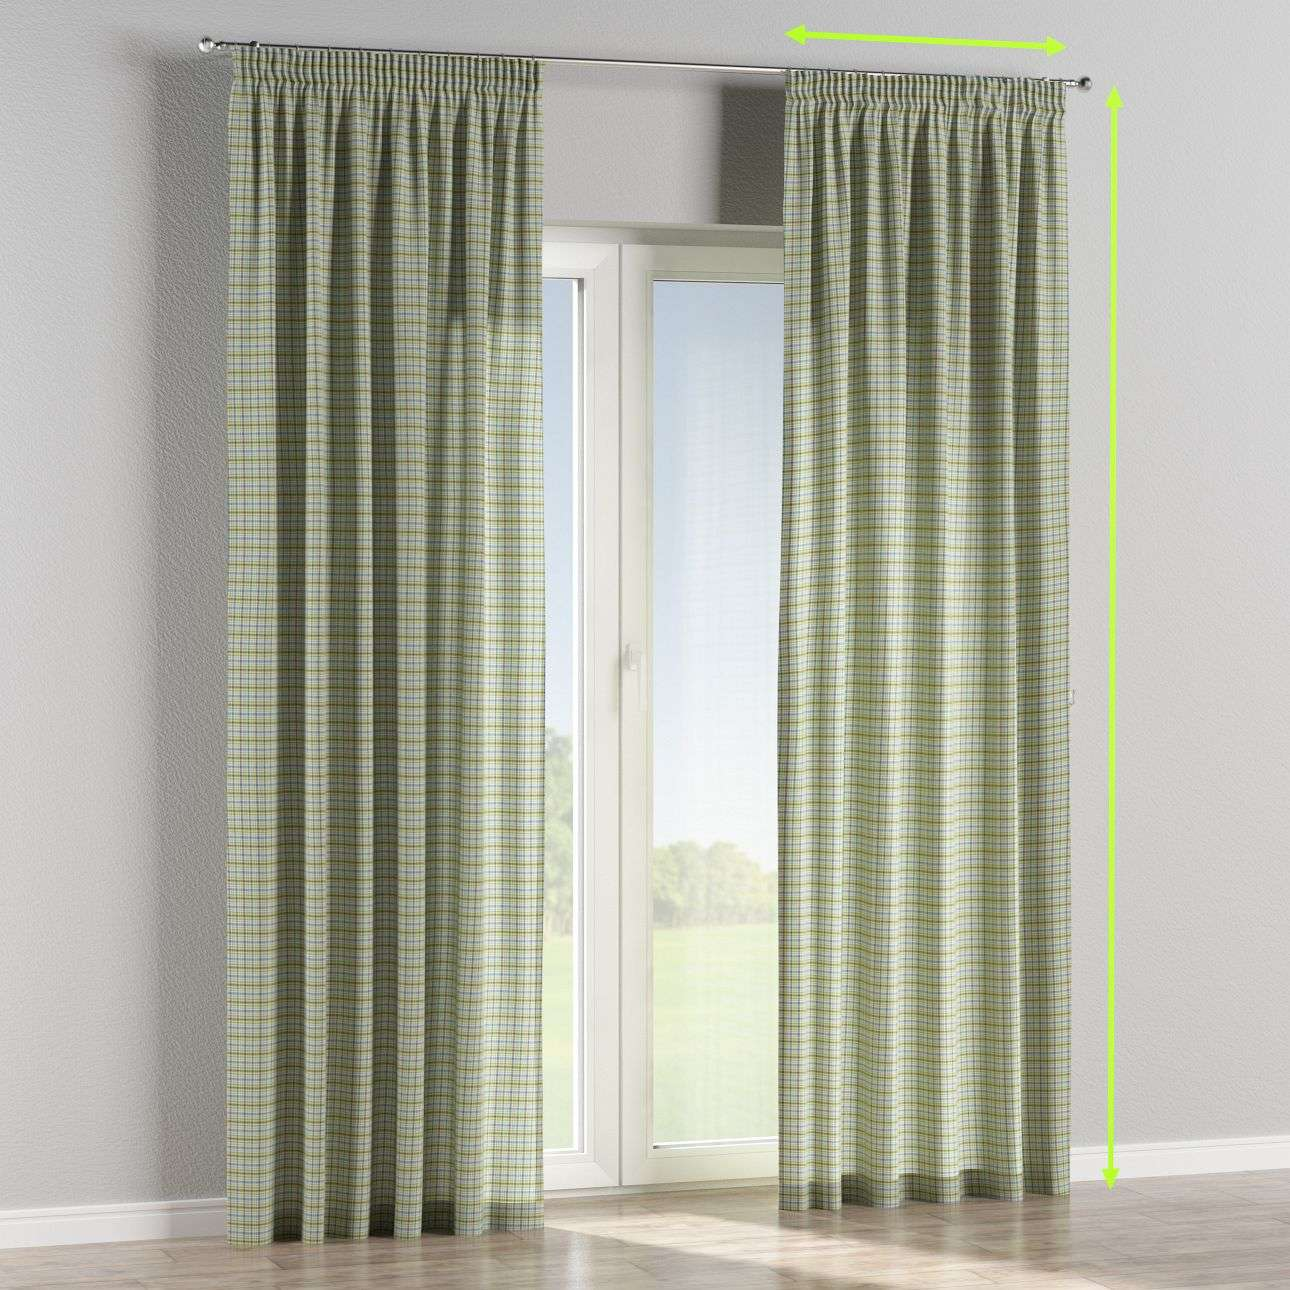 Pencil pleat curtains in collection Bristol, fabric: 126-69